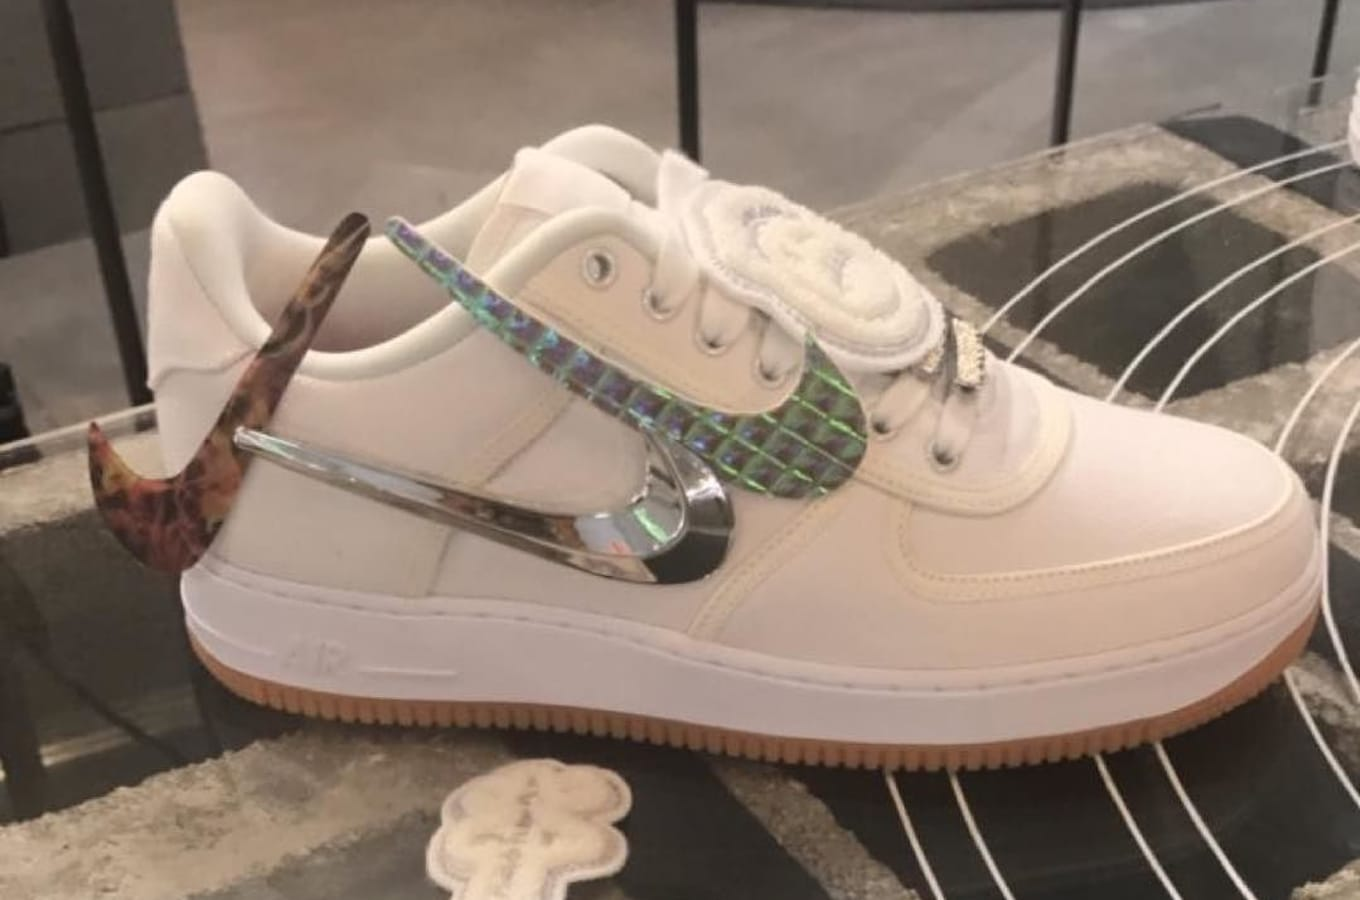 release date 3a2d7 96eed Travis Scott x Nike air Force 1 Low Cactus Jack | Sole Collector